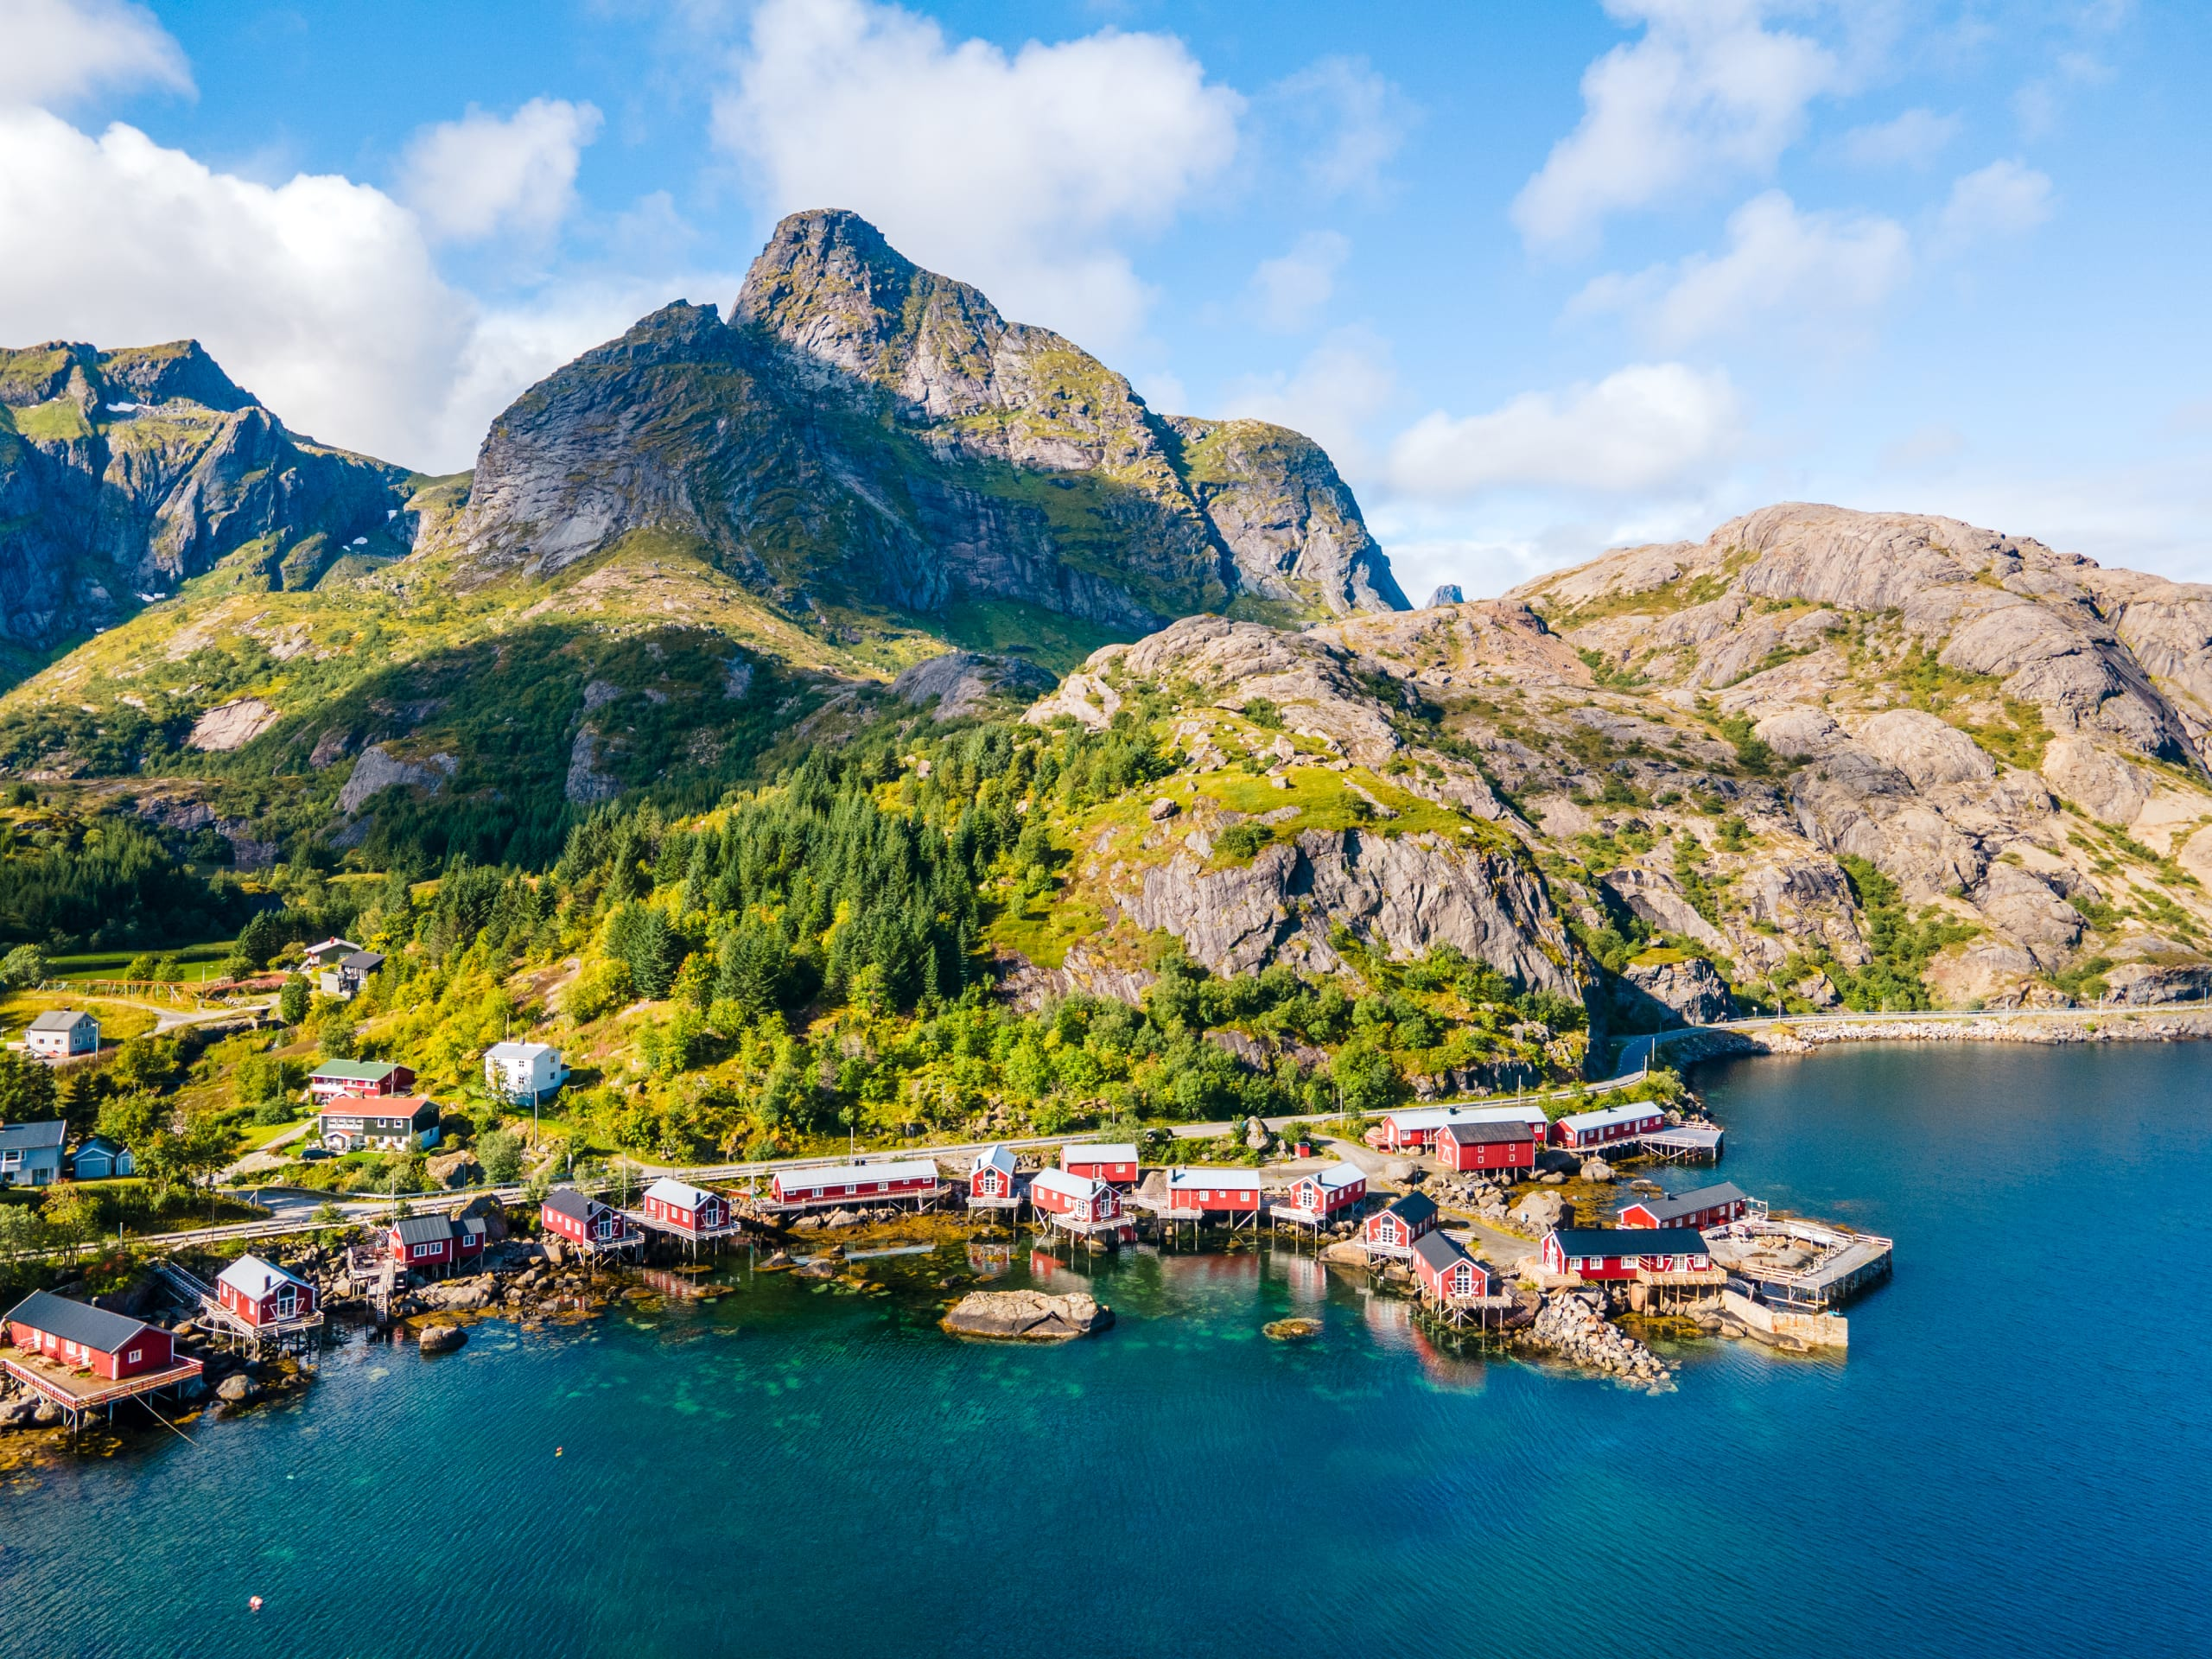 Nusfjord fishing village and red Rorbu cabins